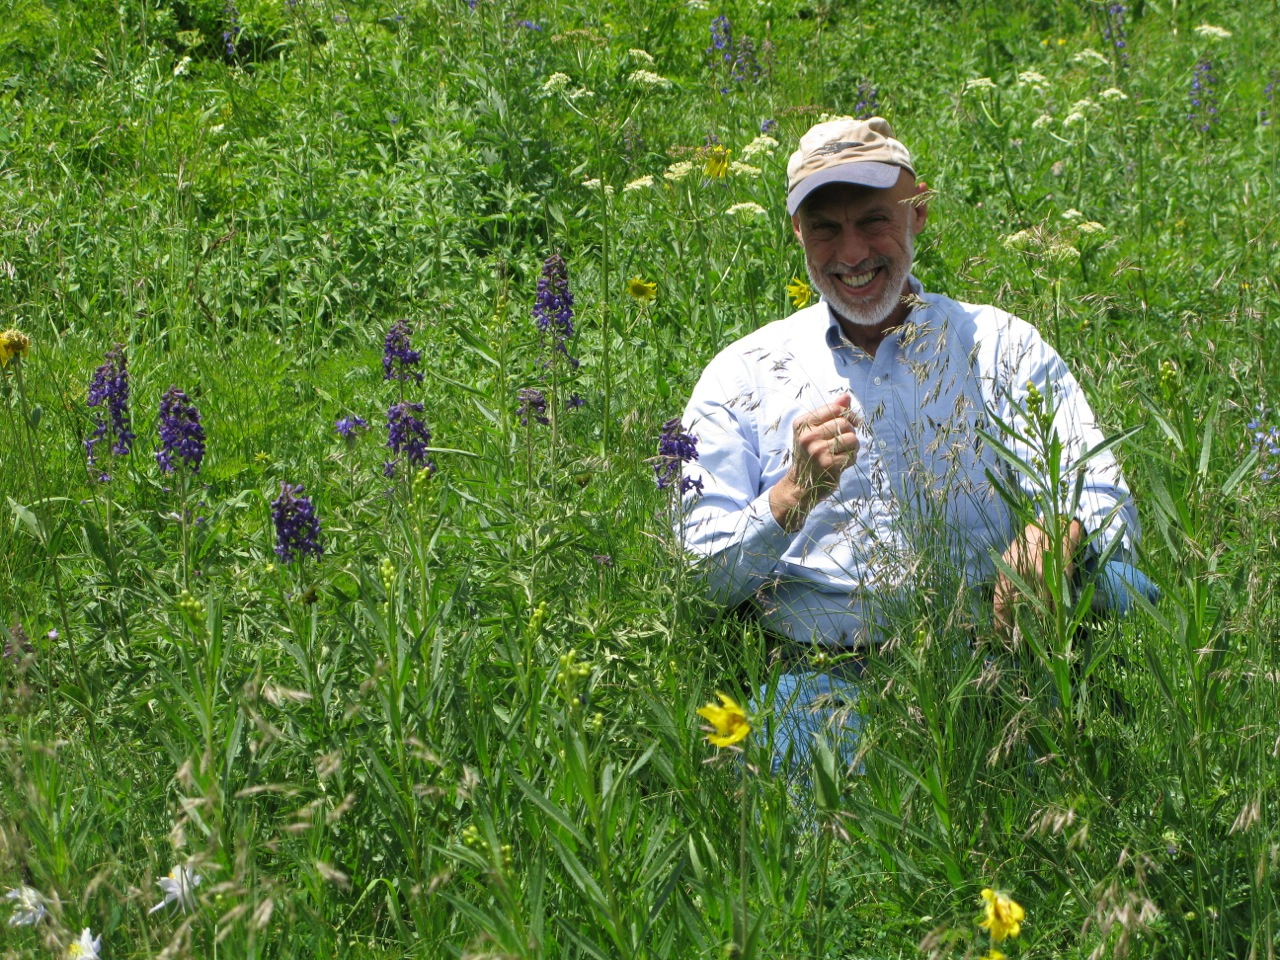 Richard Cabe happily examining a wildflower meadow near Crested Butte.